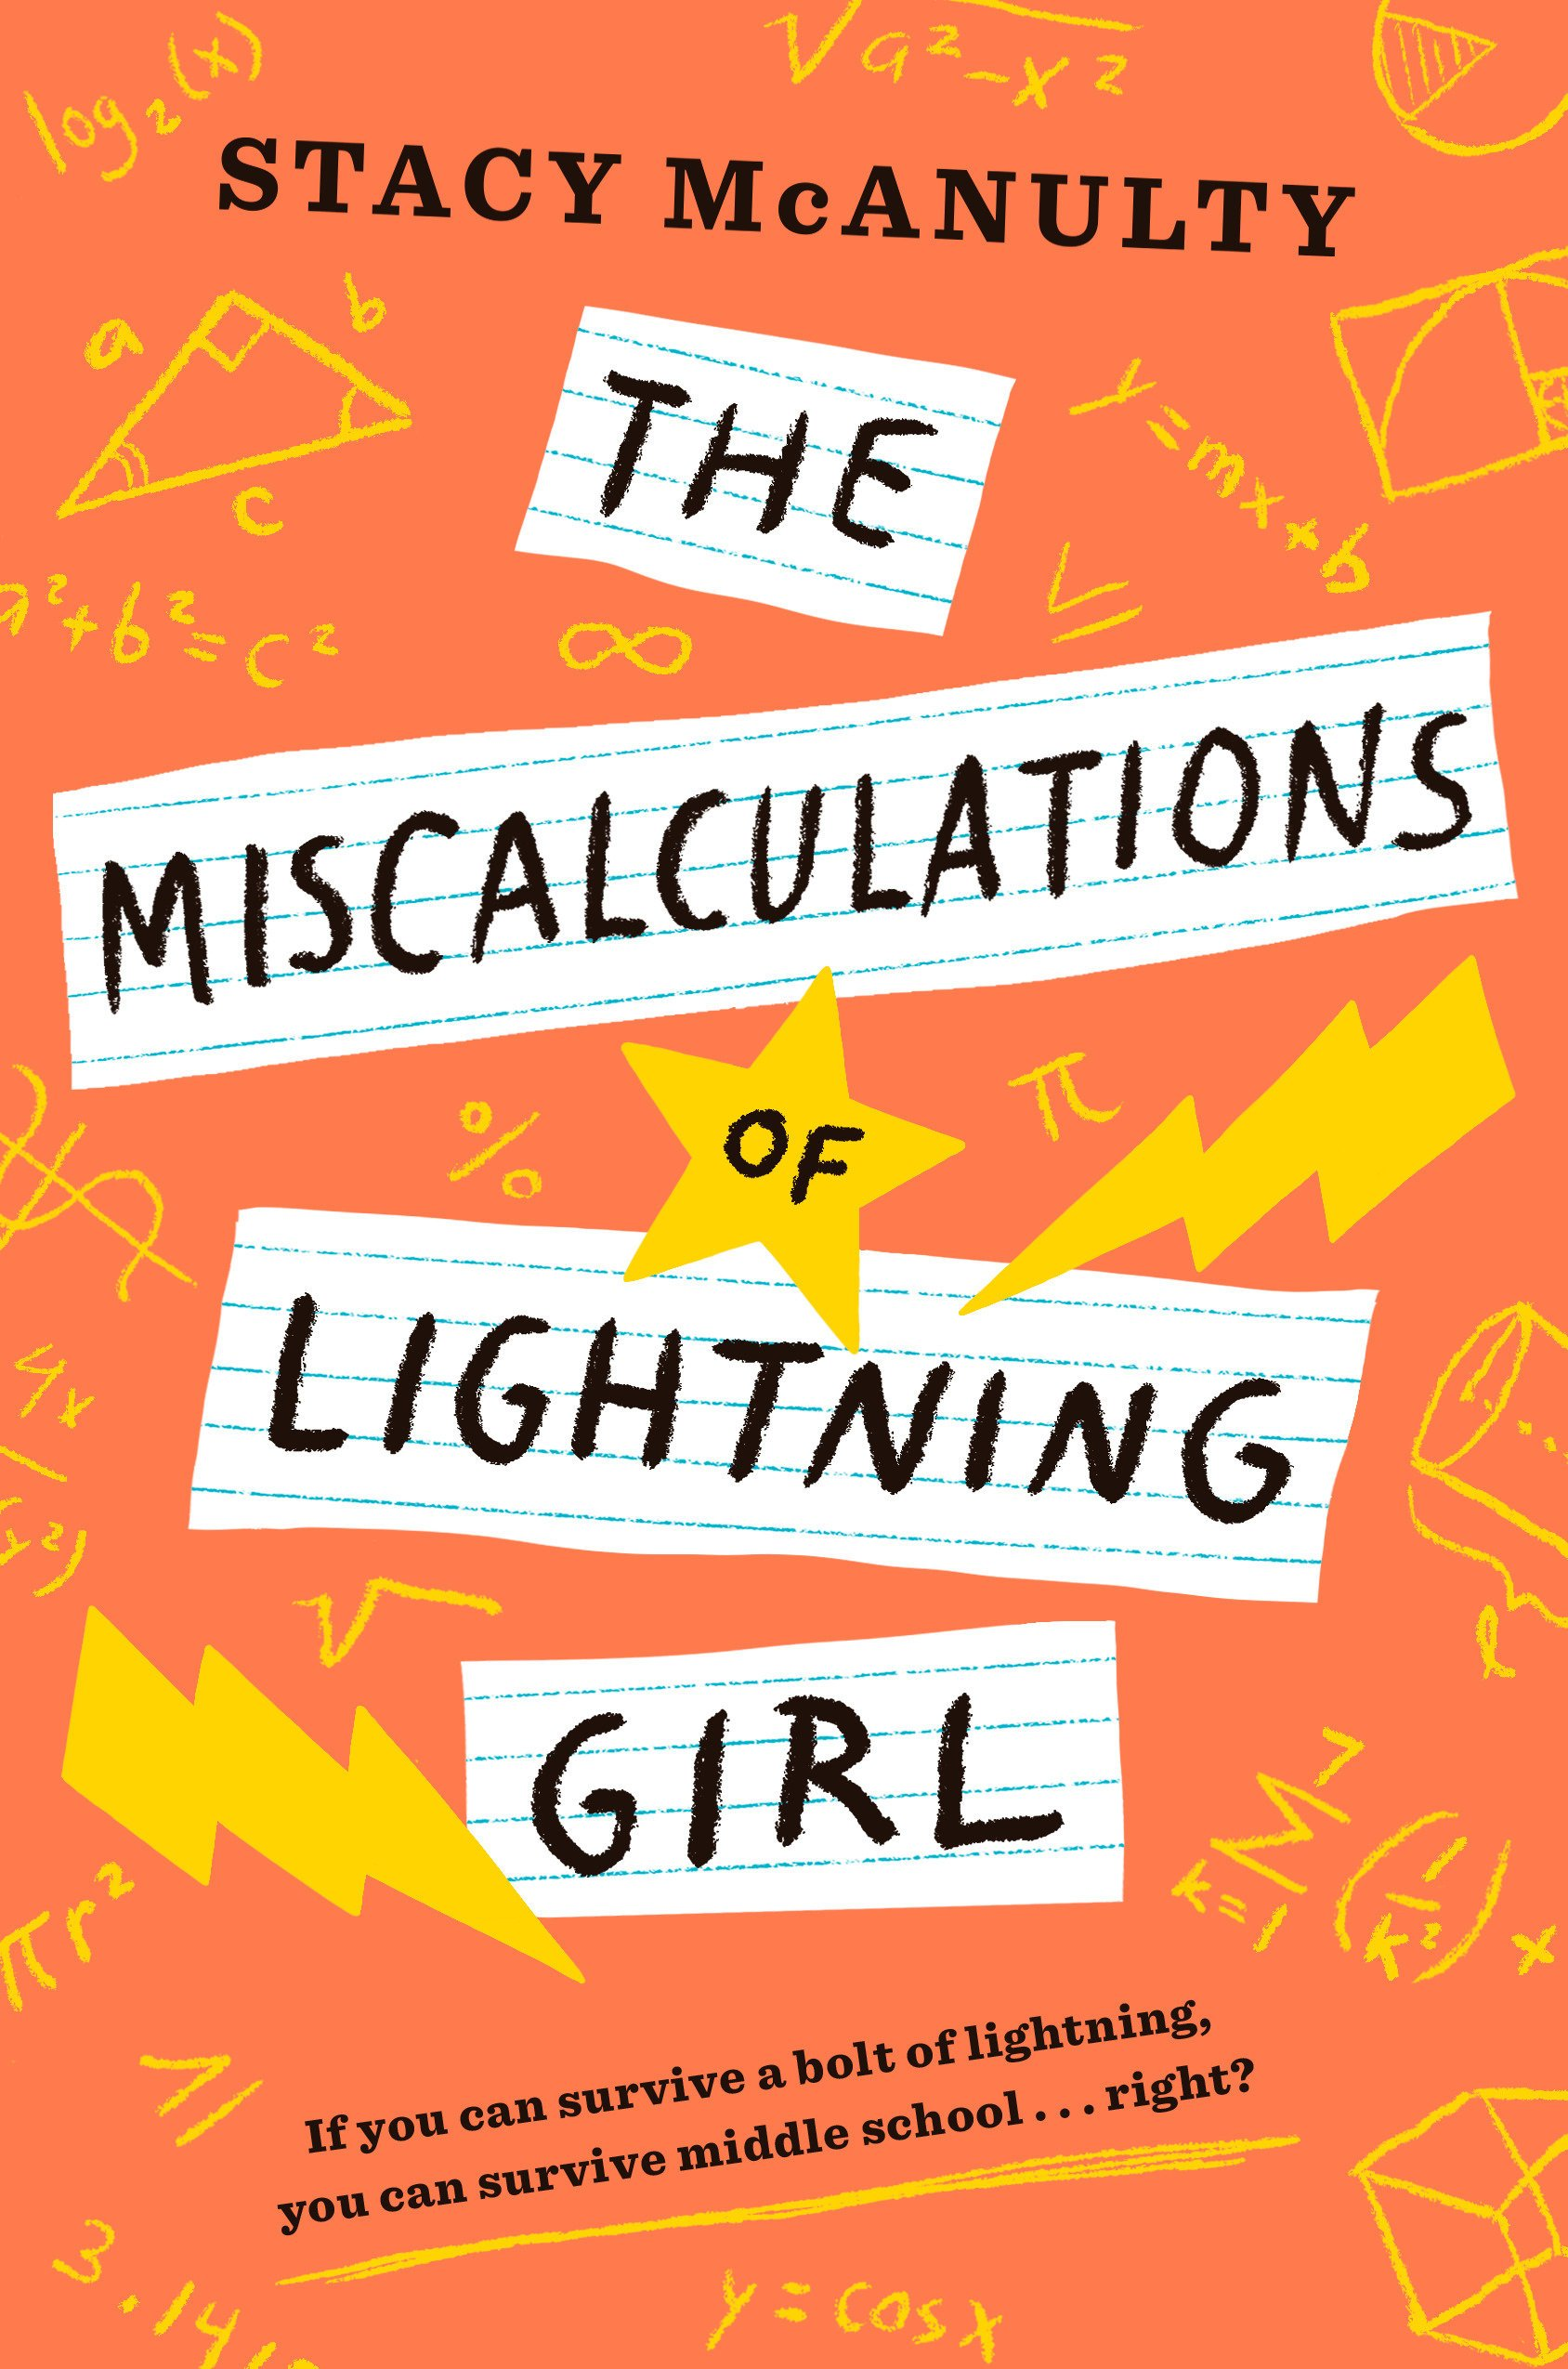 Image result for miscalculations of lightning girl""